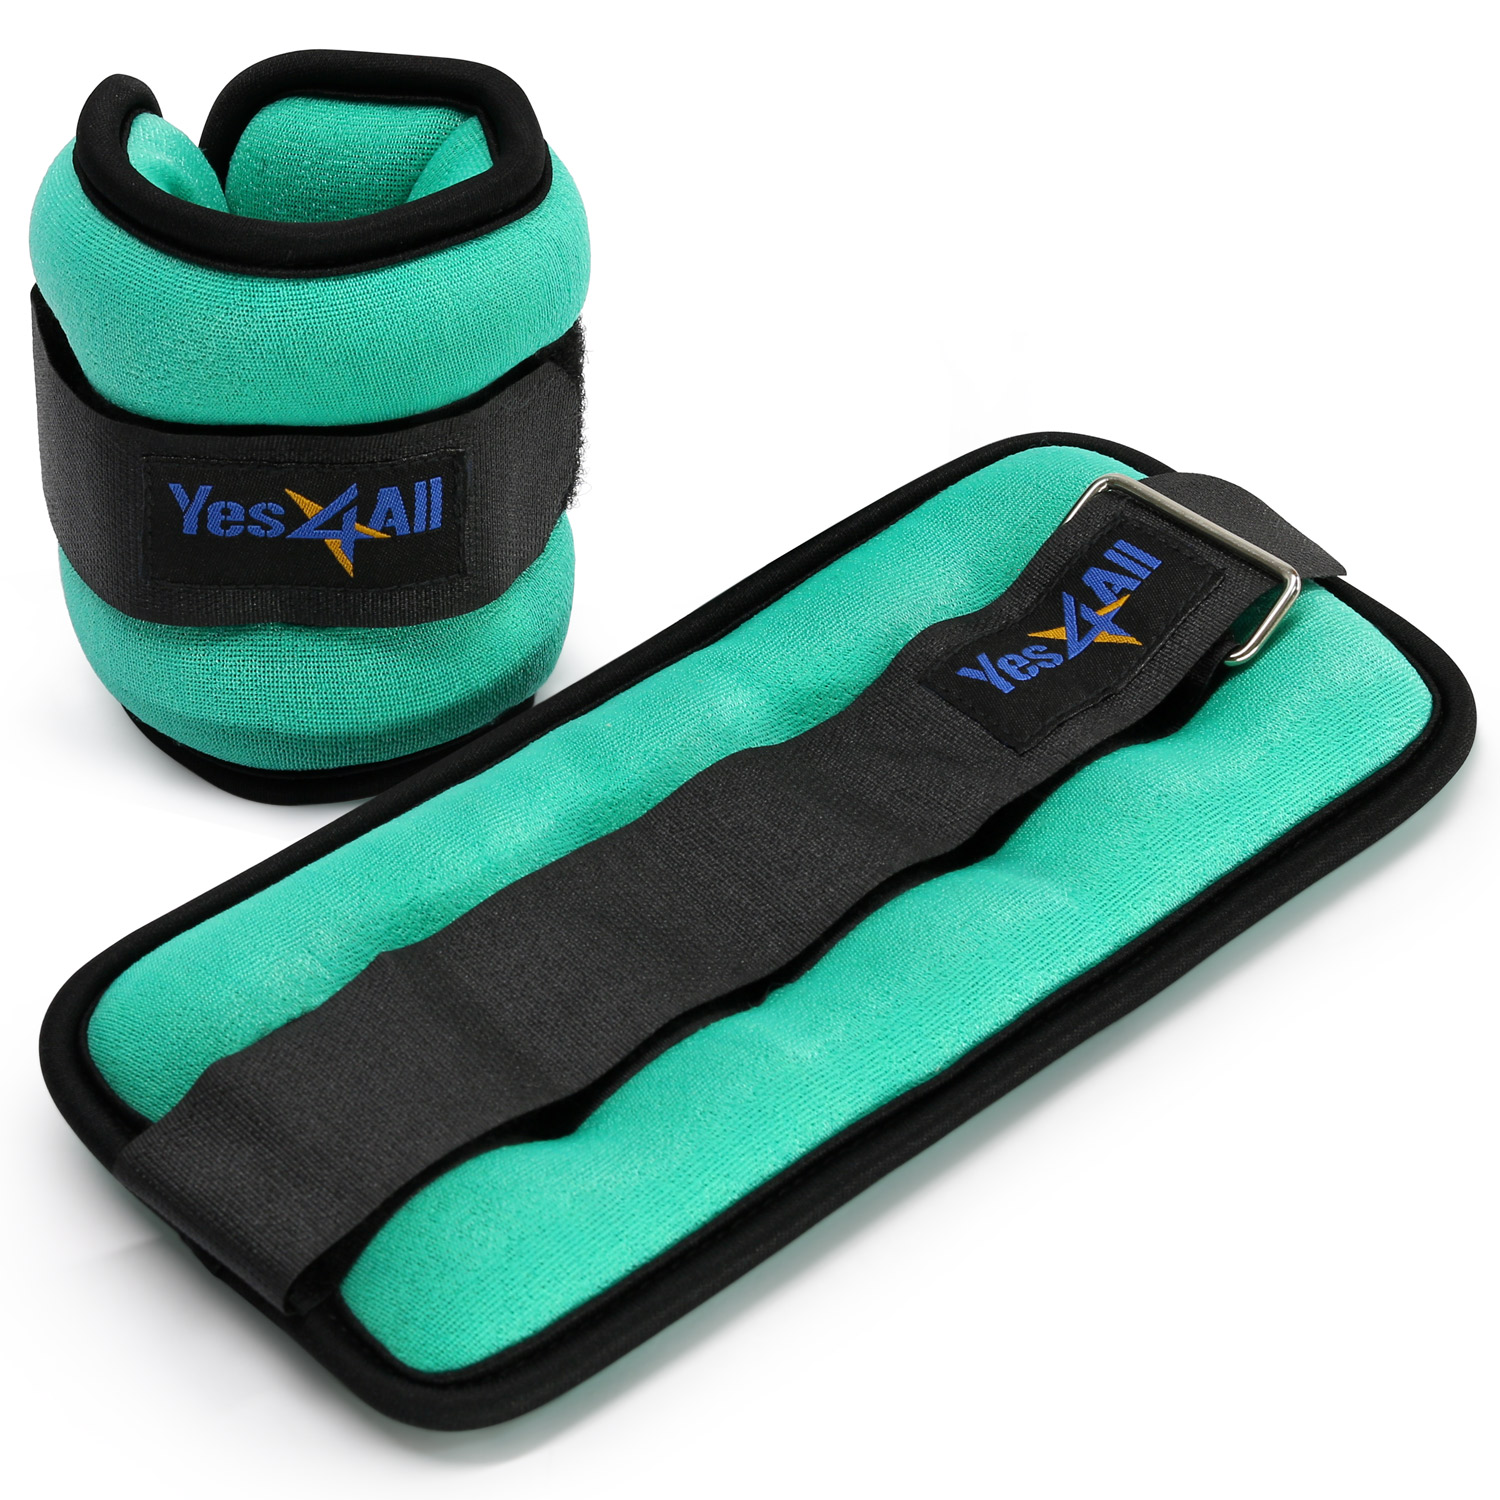 Yes4All Ankle Weights / Wrist Weights (Set of 2) with Adjustable Strap - Perfect for Walking, Fitness, Cardio Exercise